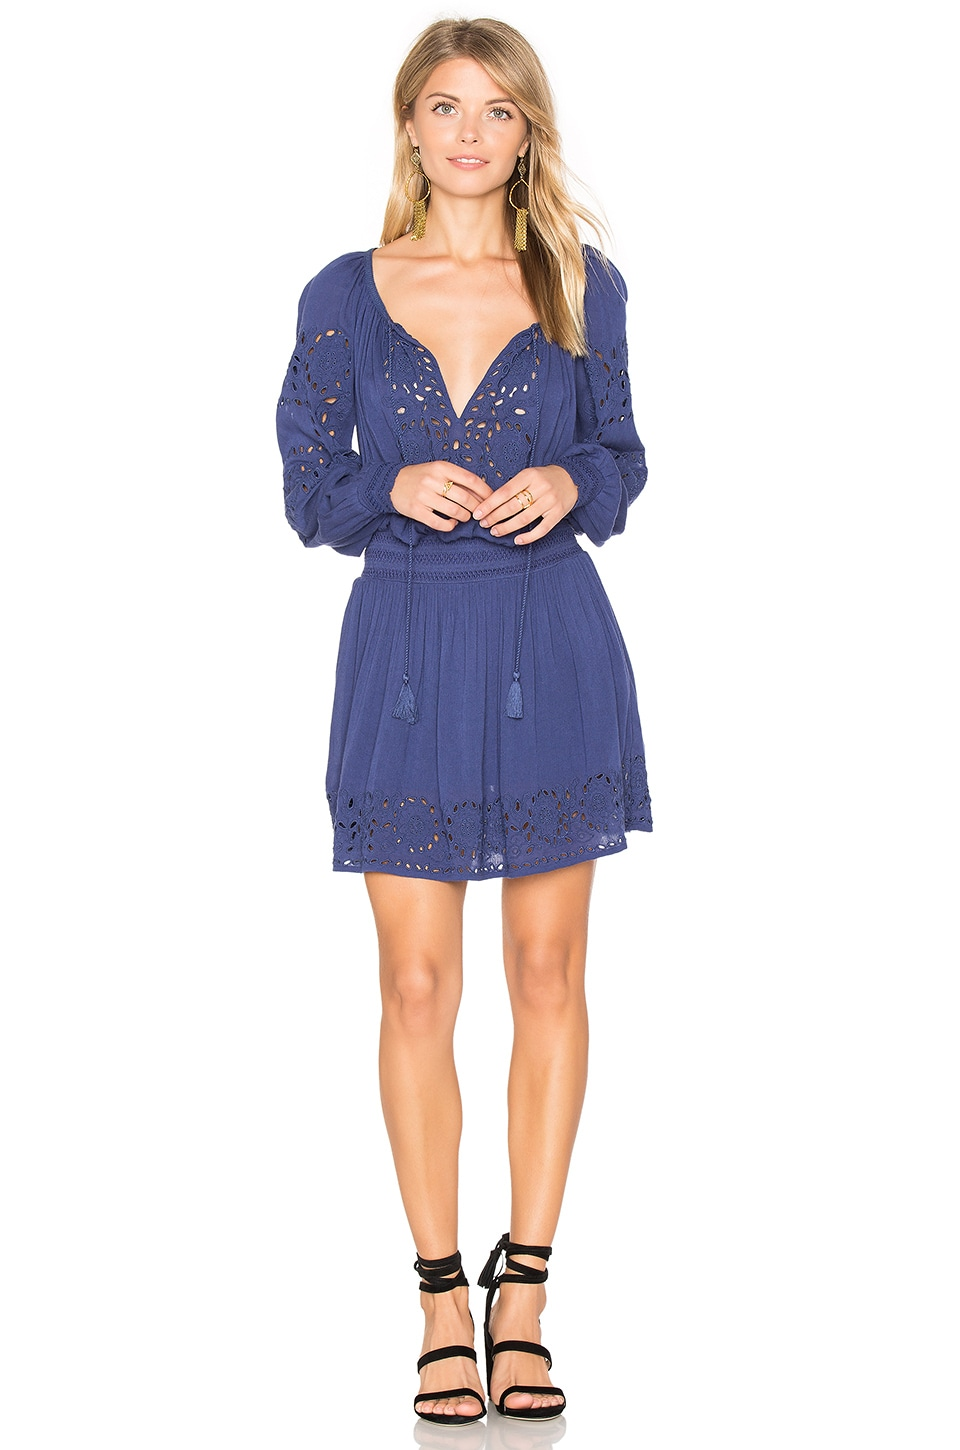 Alice + Olivia Brenda Mini Dress in Midnight Blue